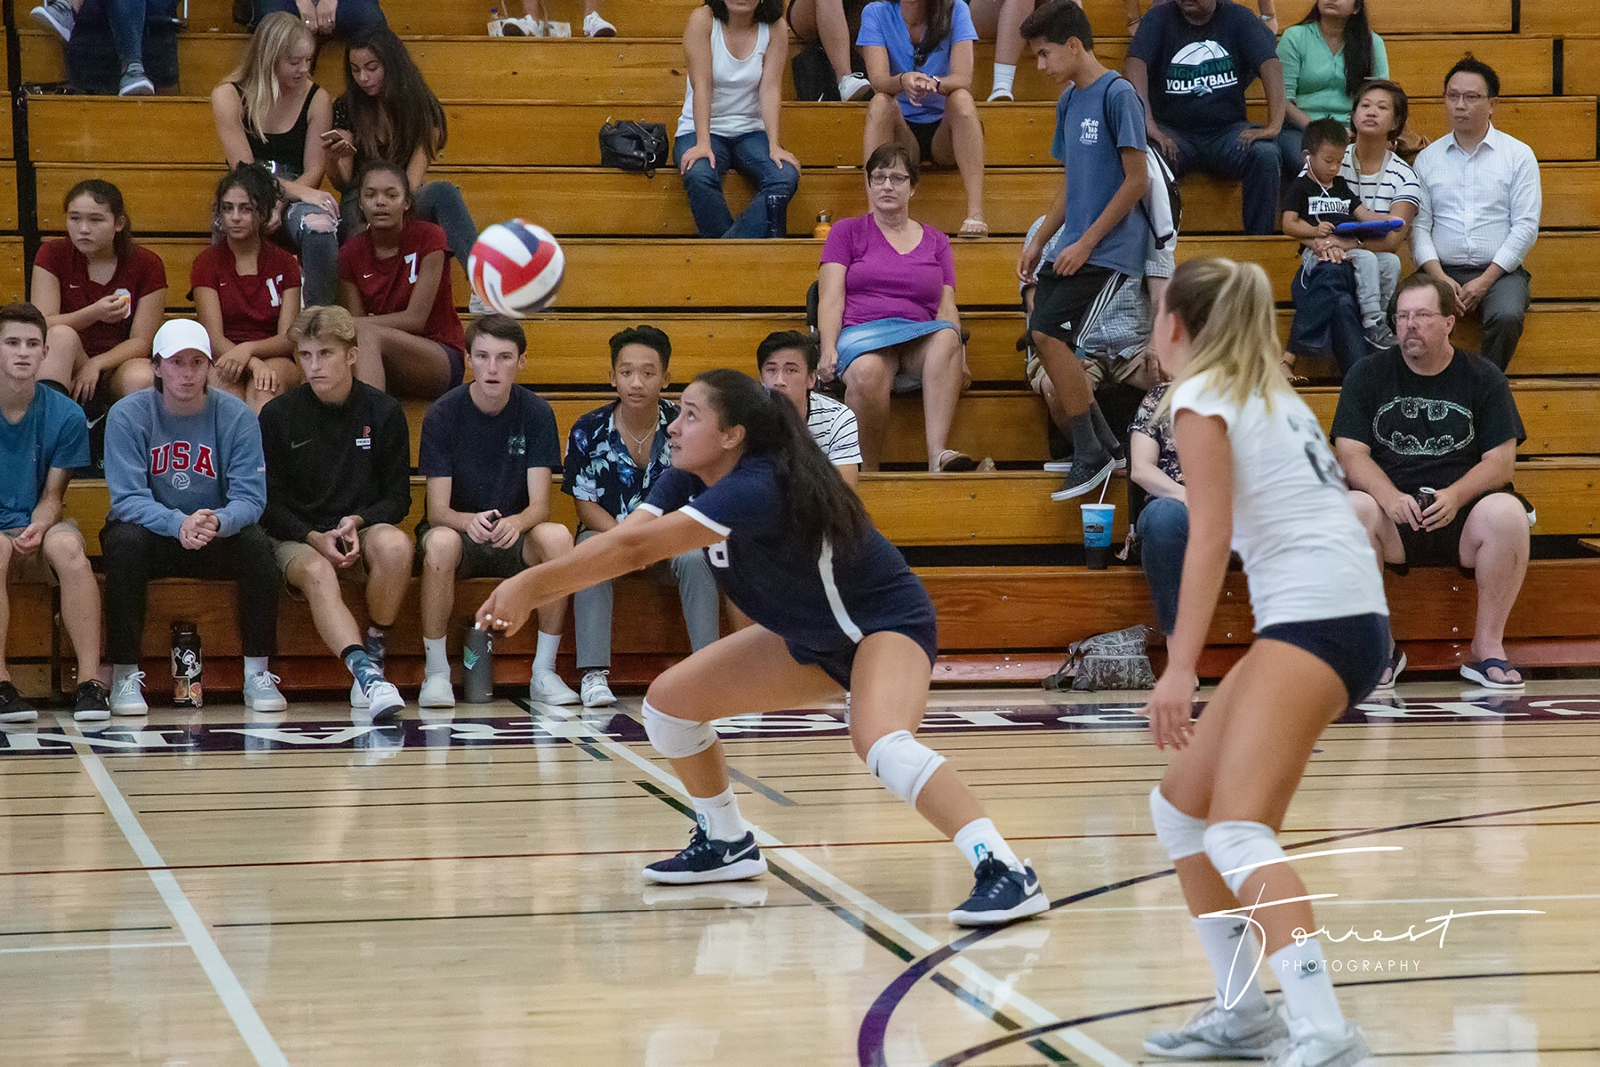 Varsity Girls Volleyball Falls To Del Norte In Epic Battle